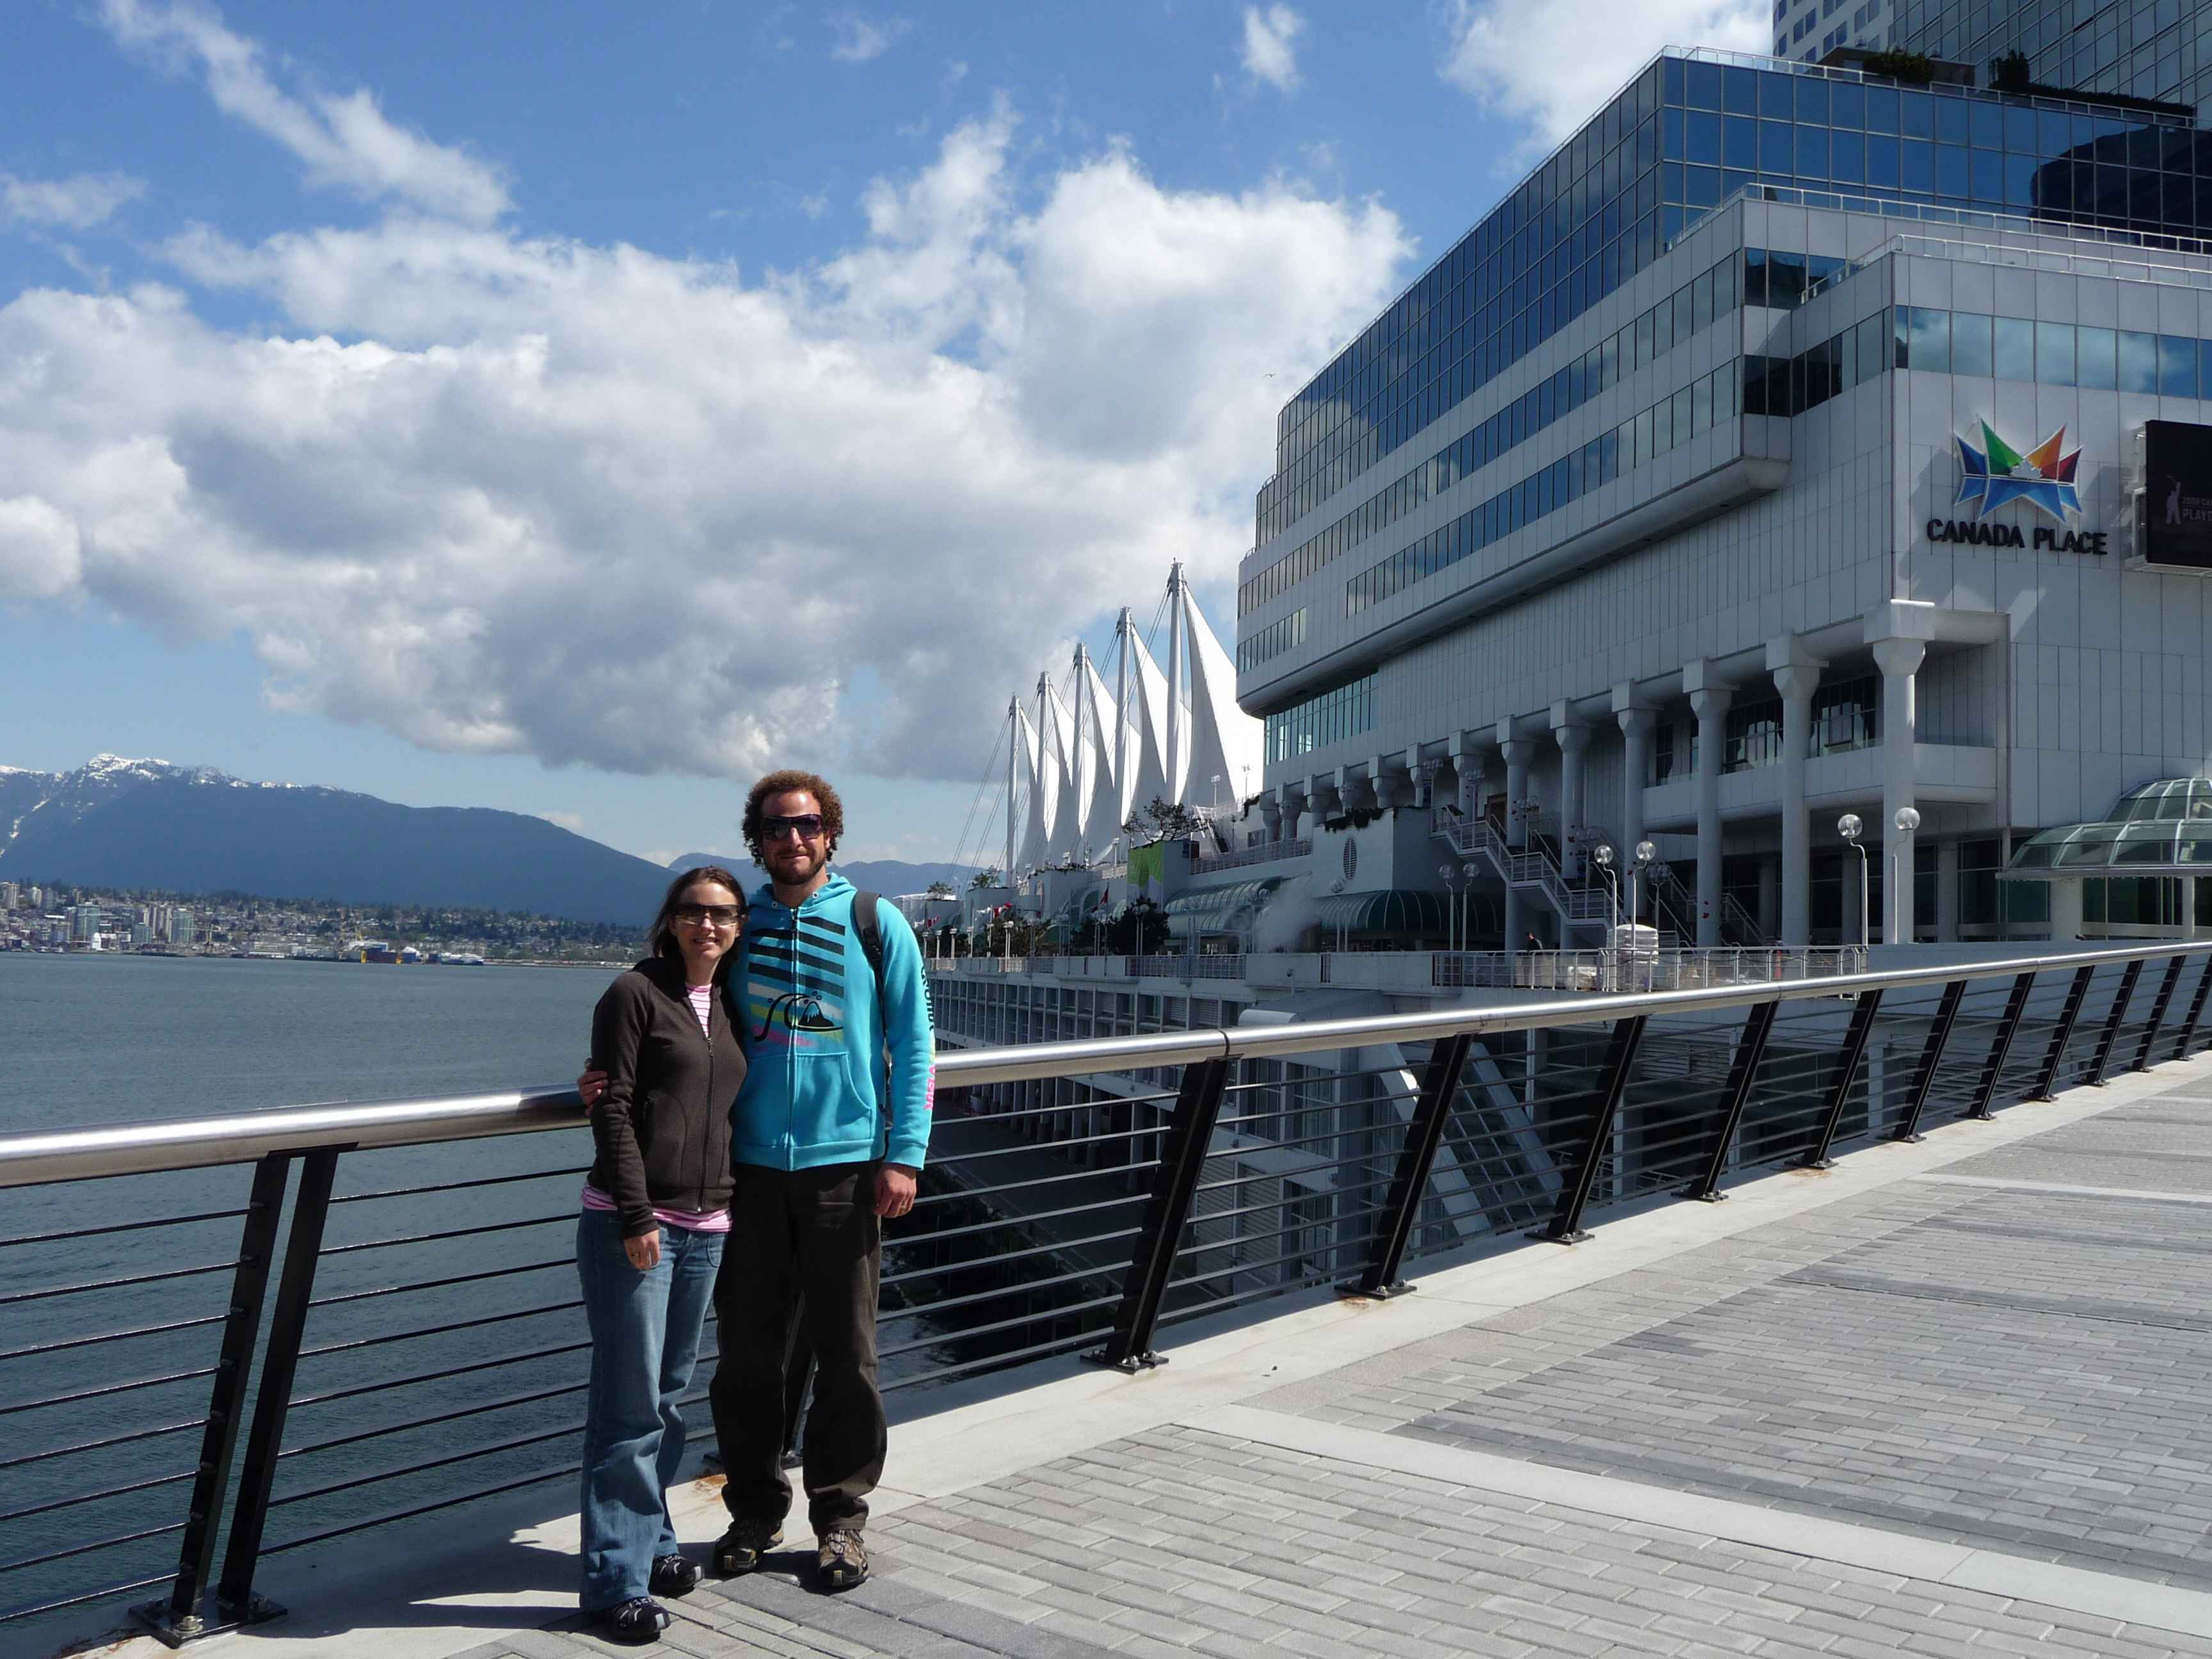 Canada place.JPG